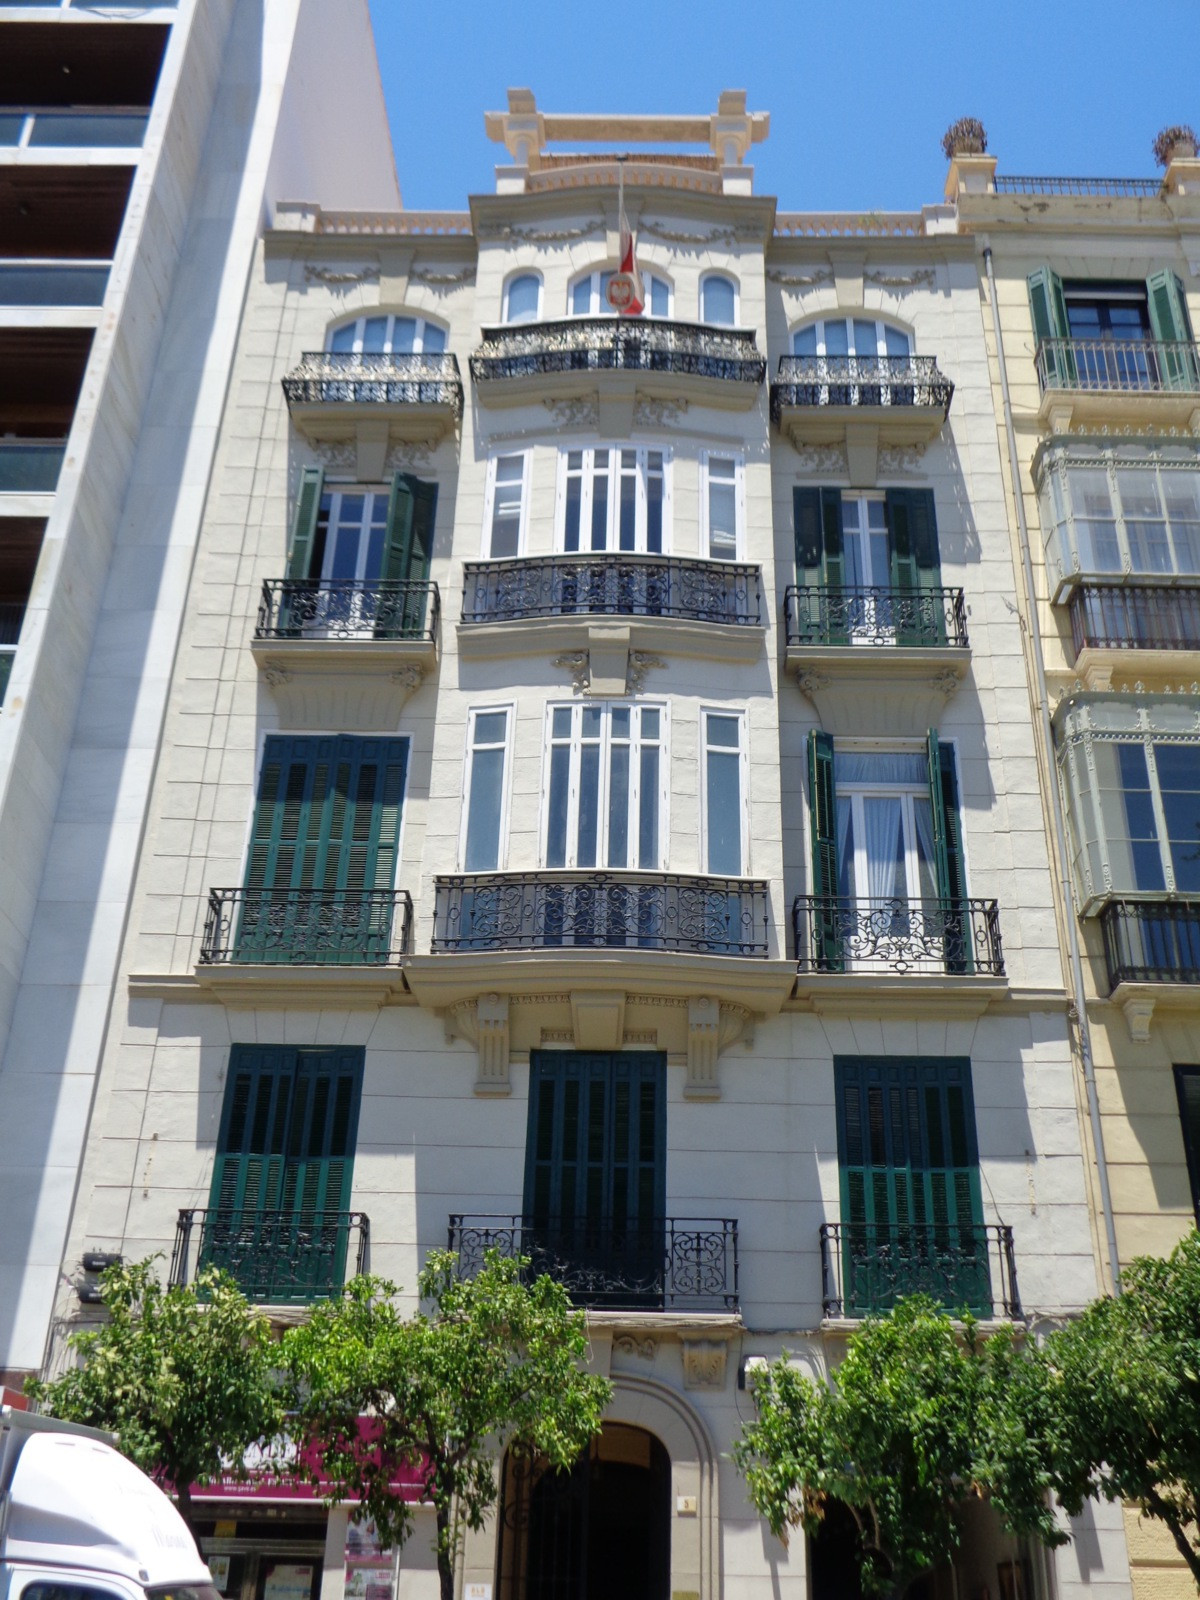 Gorgeous Comercial in the heart of Malaga. Next to Hotel AC Malaga Palacio and the Cathedral. Views ,Spain